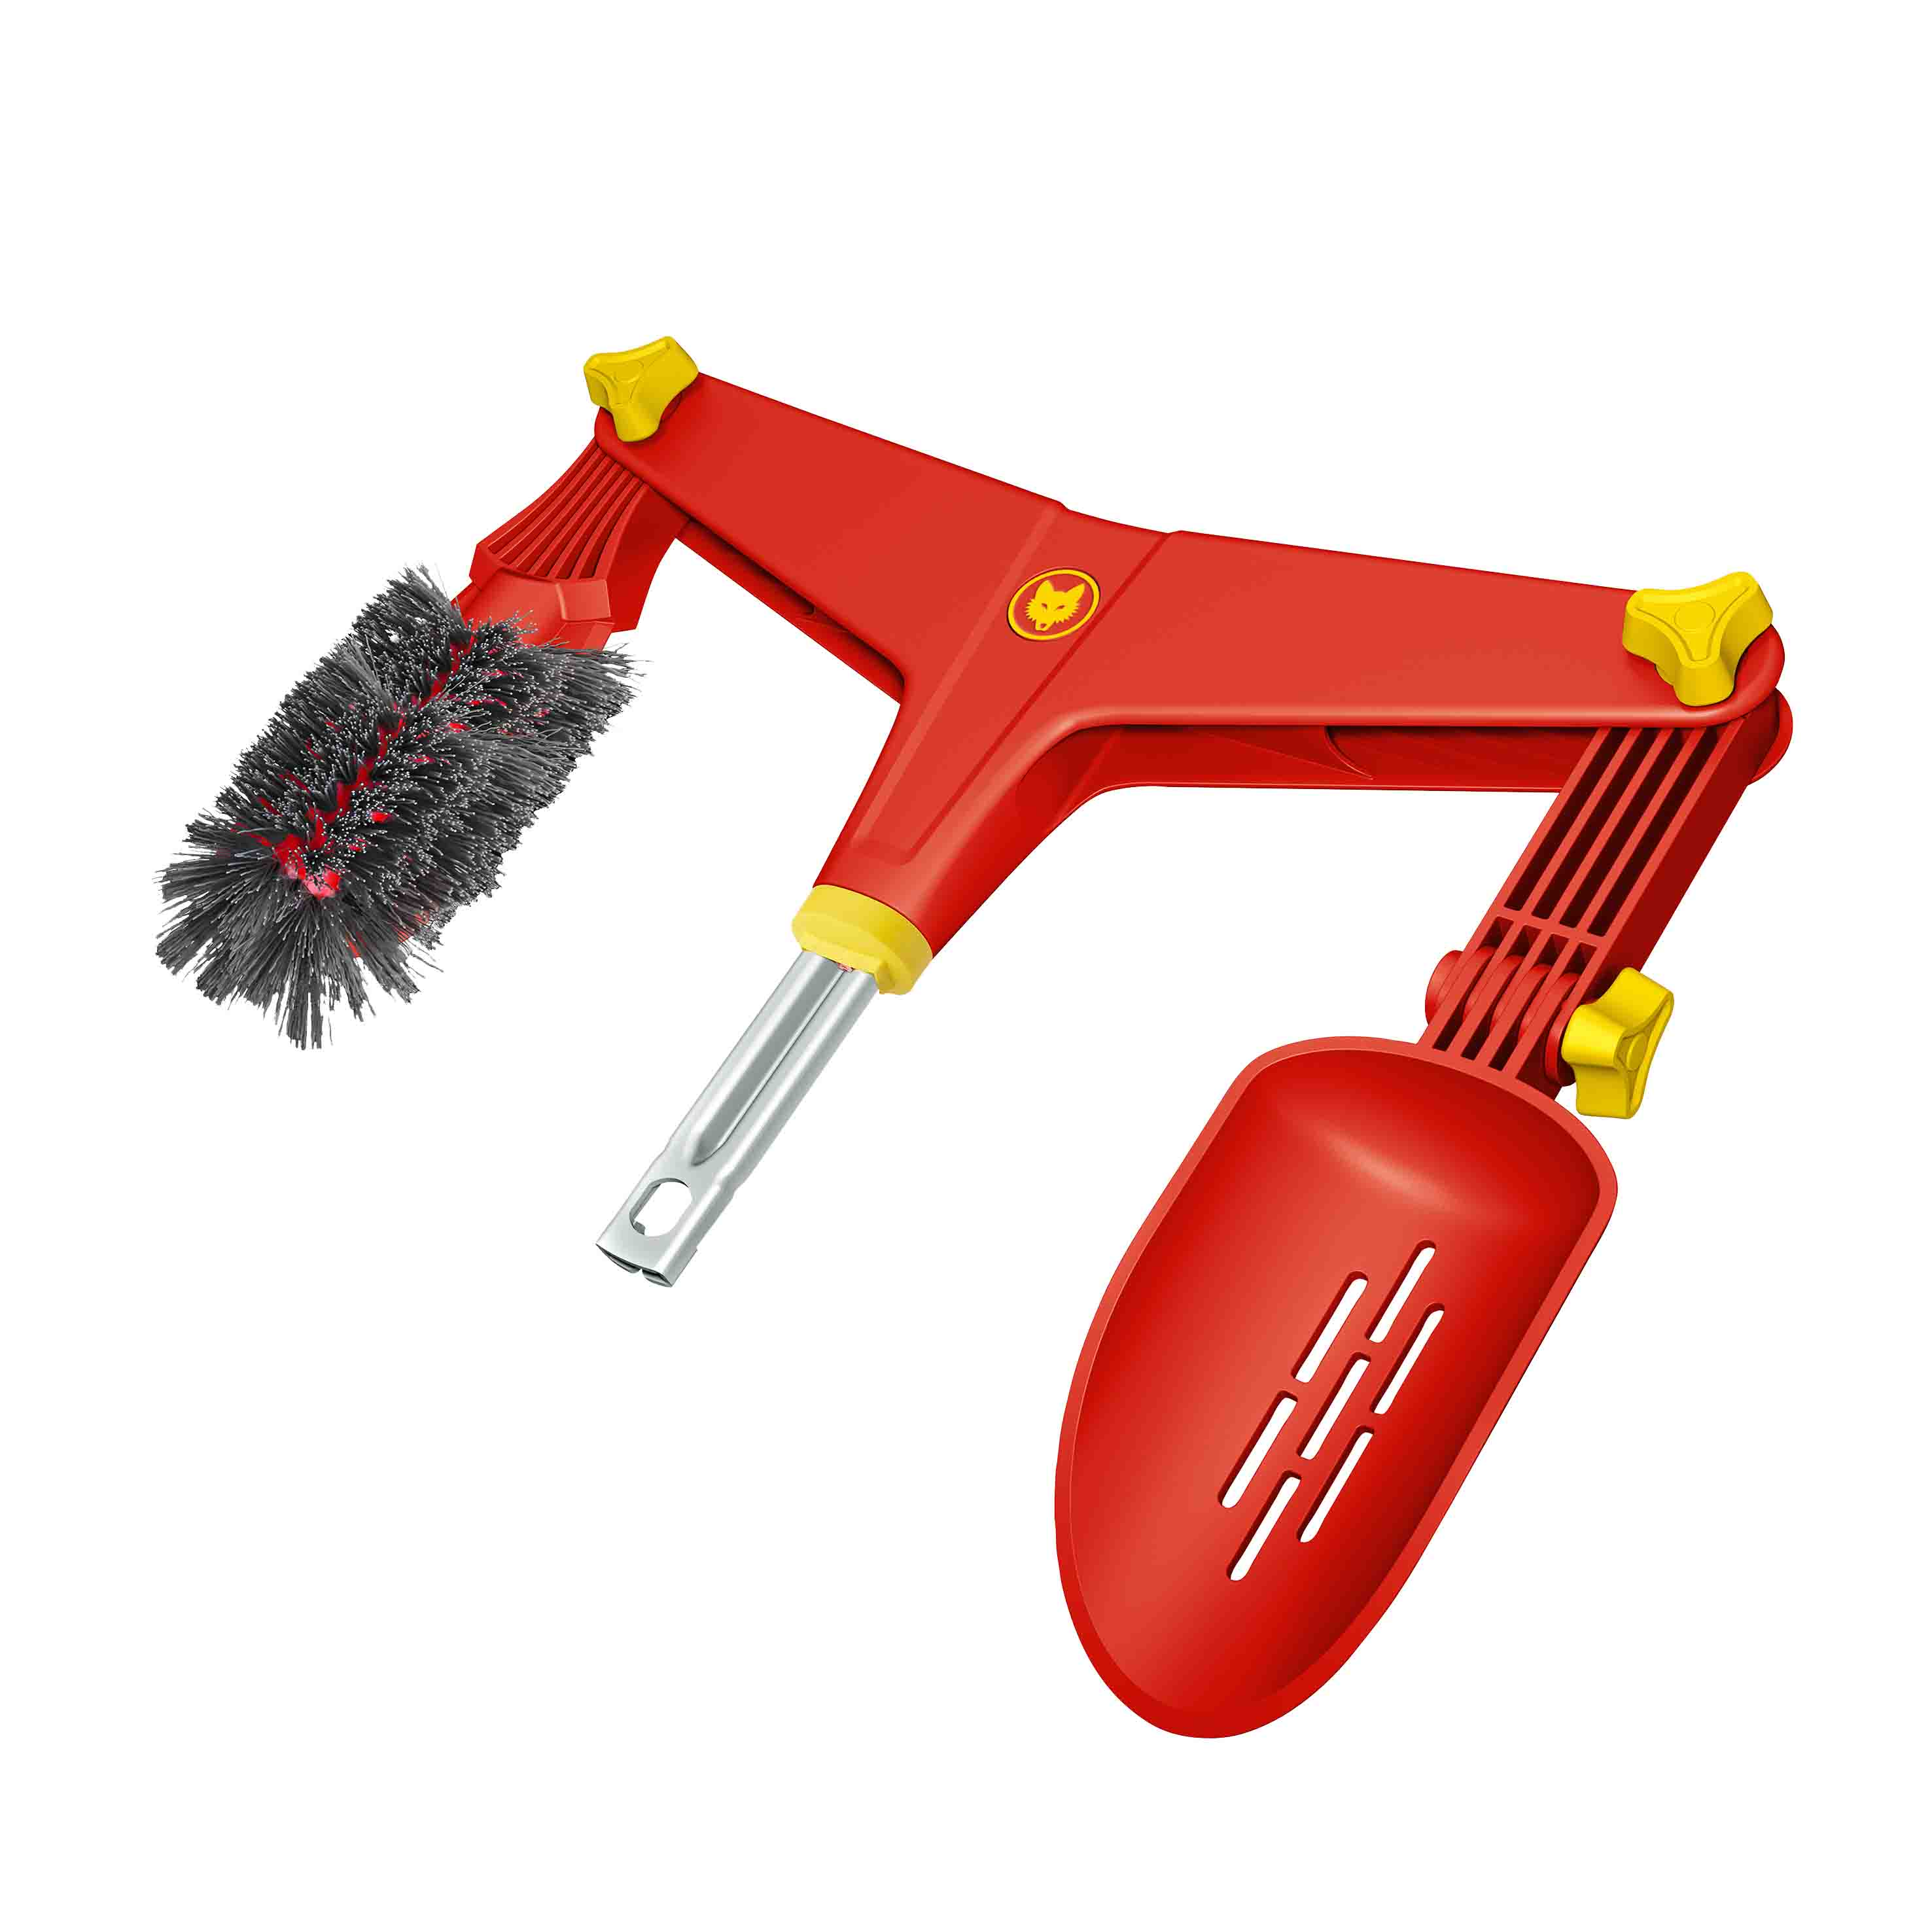 Gutter and Drain Cleaning Attachment By Wolf Garten